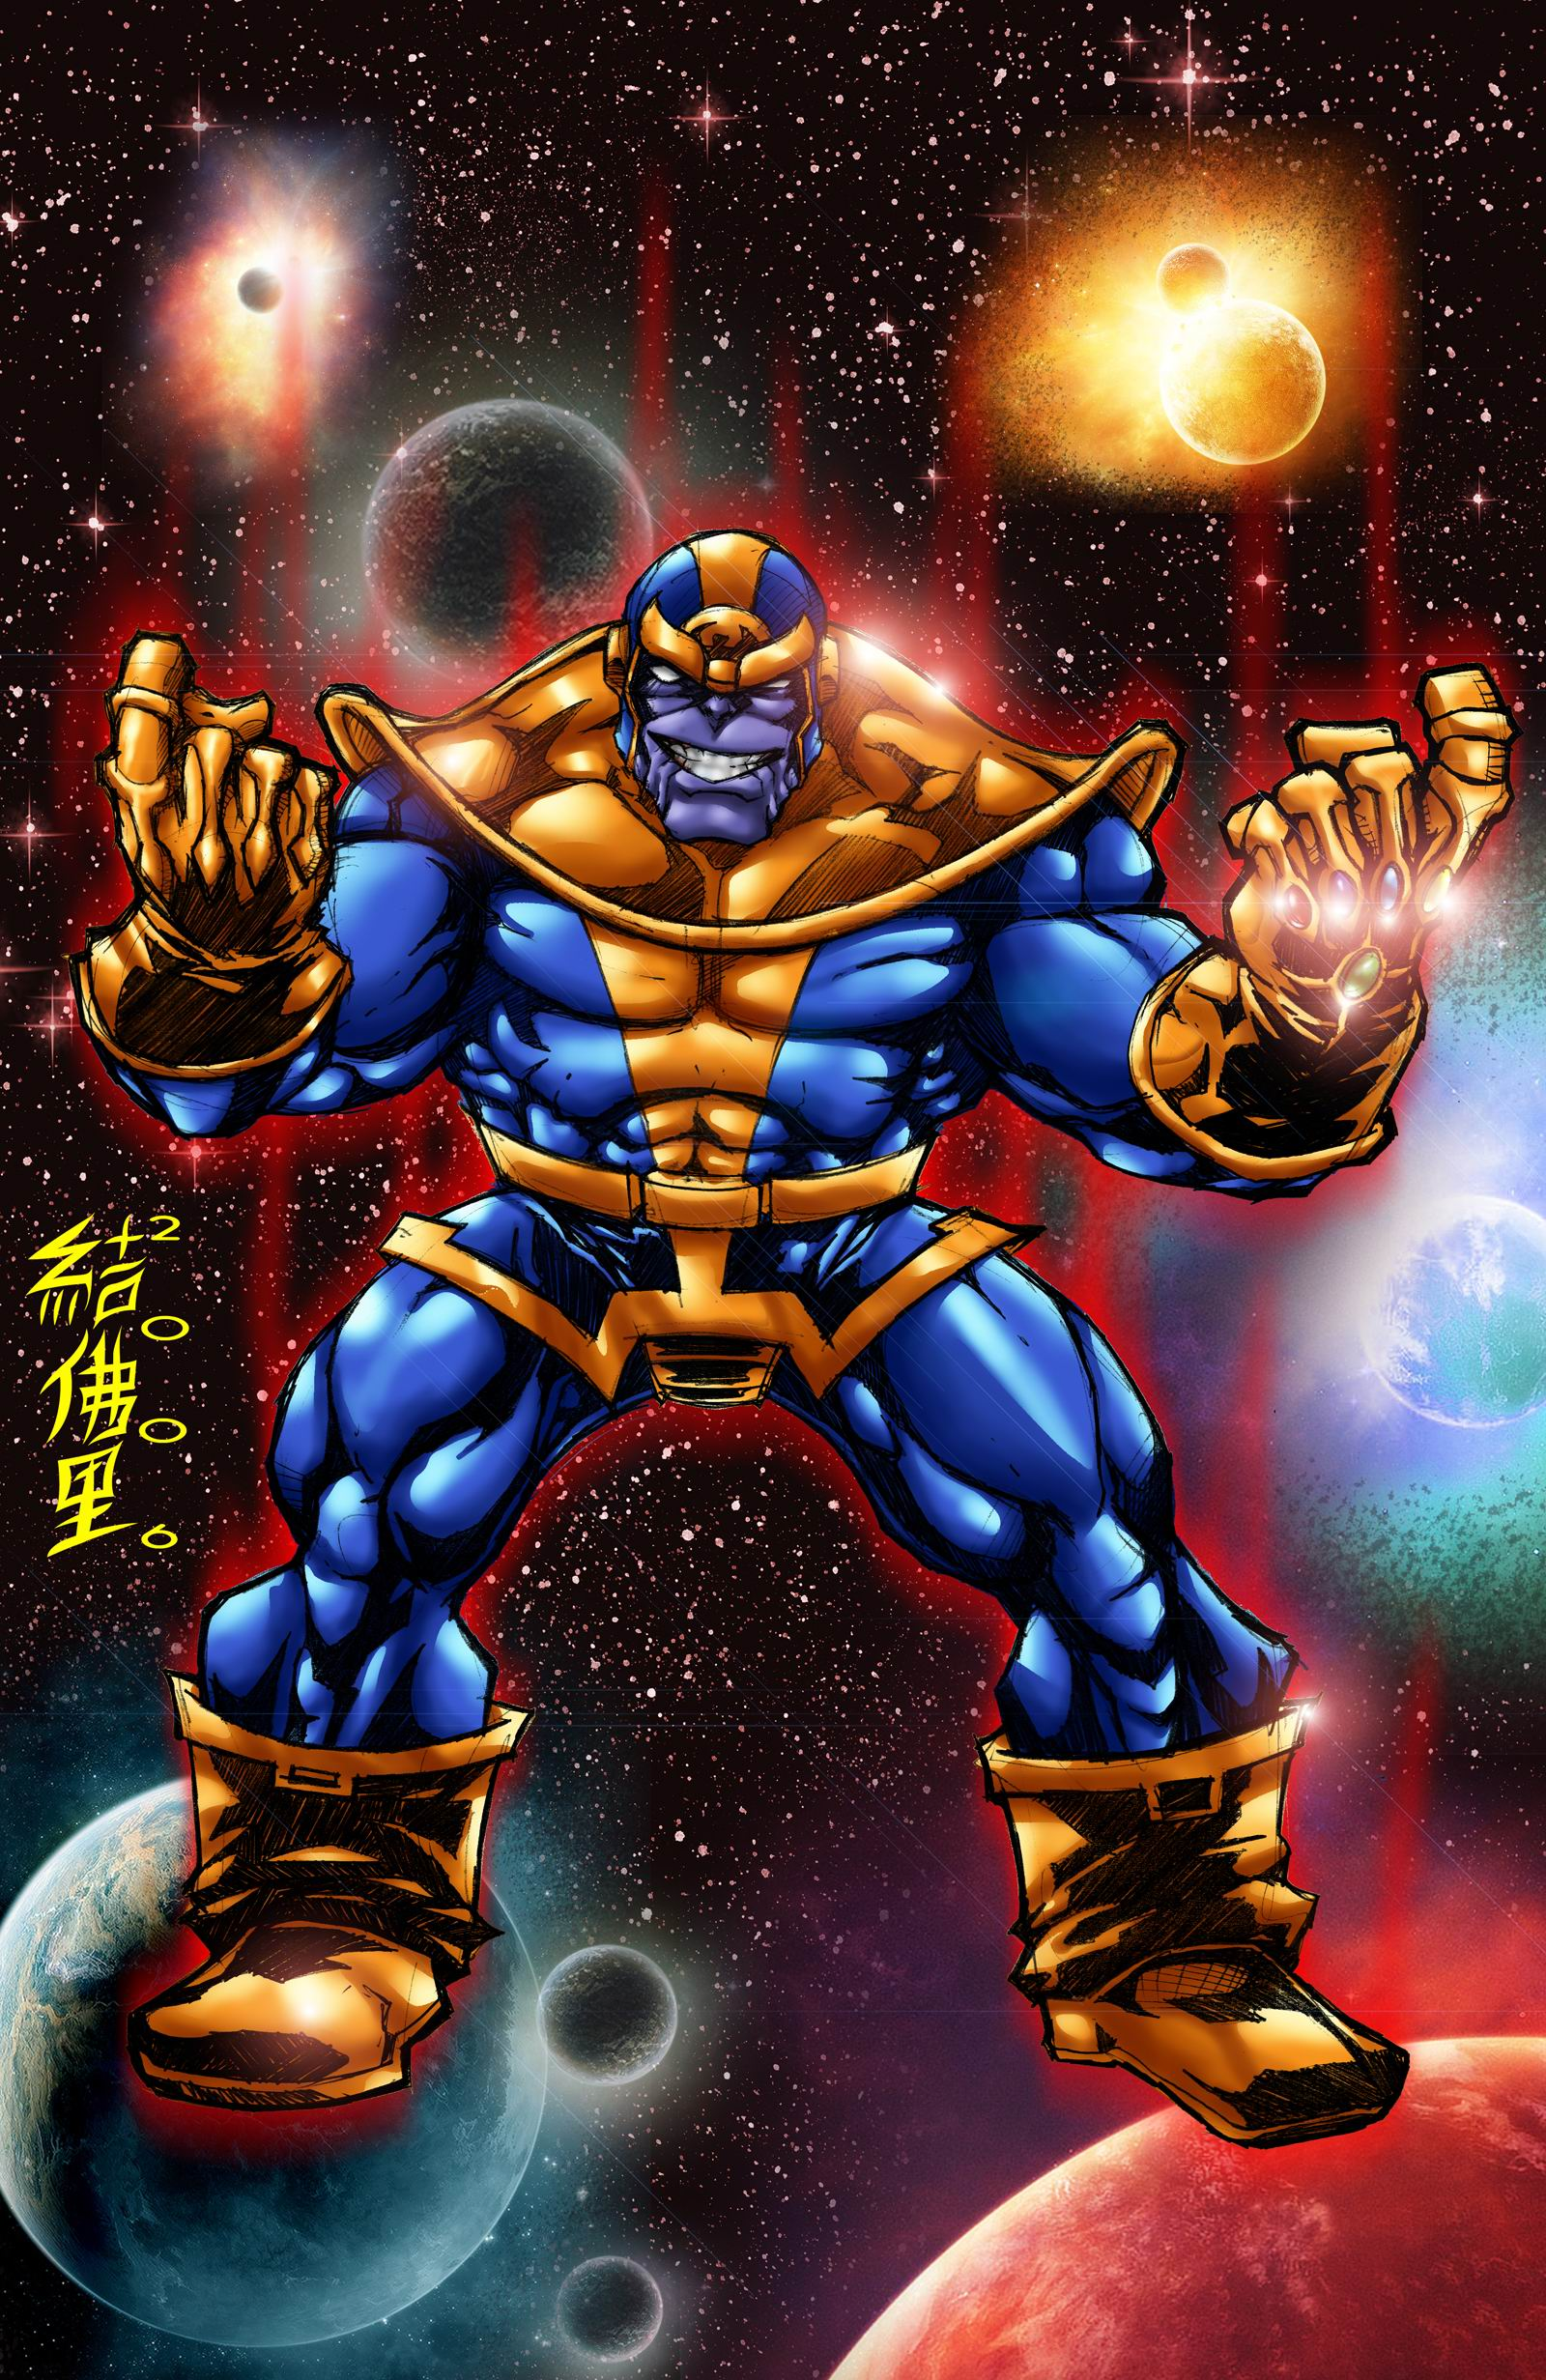 THANOS with INFINITY GAUNTLET by WOLVERINE76 on DeviantArt